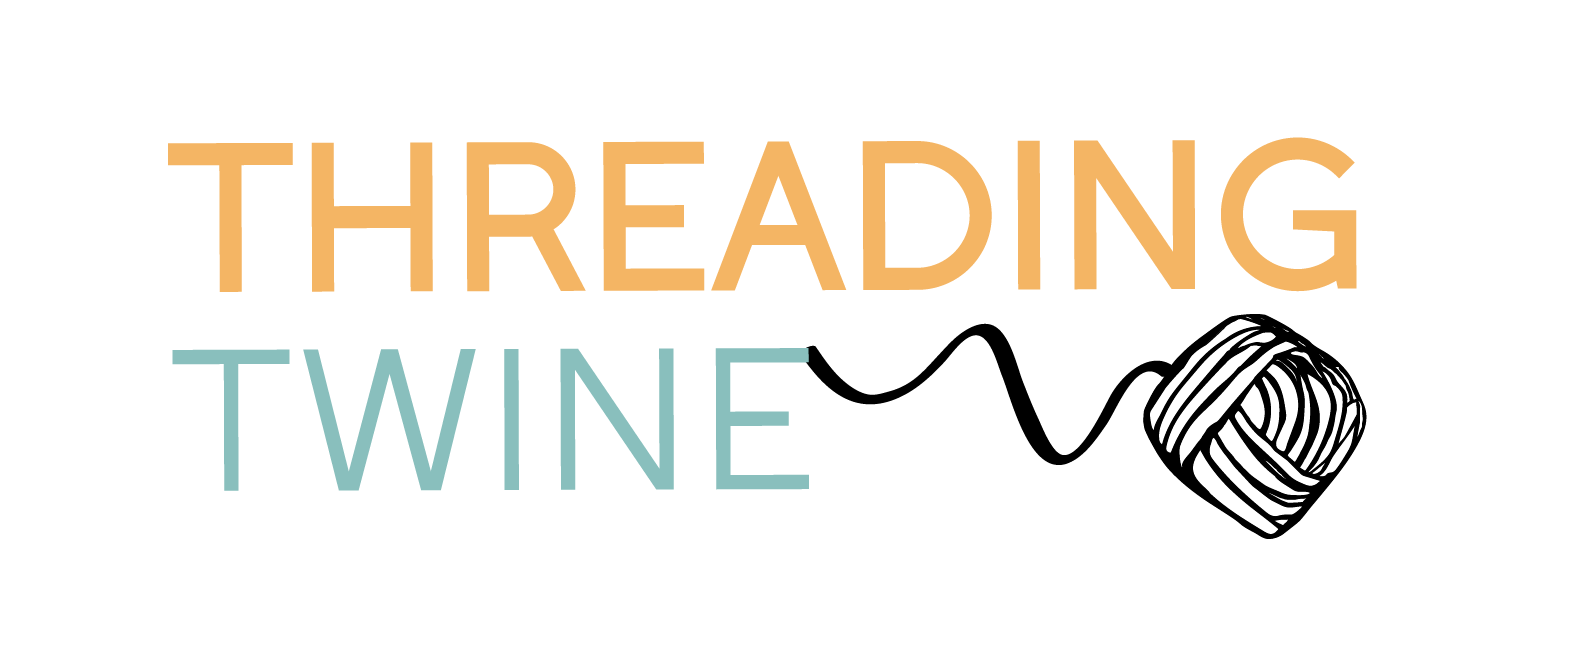 threadingtwine Logo